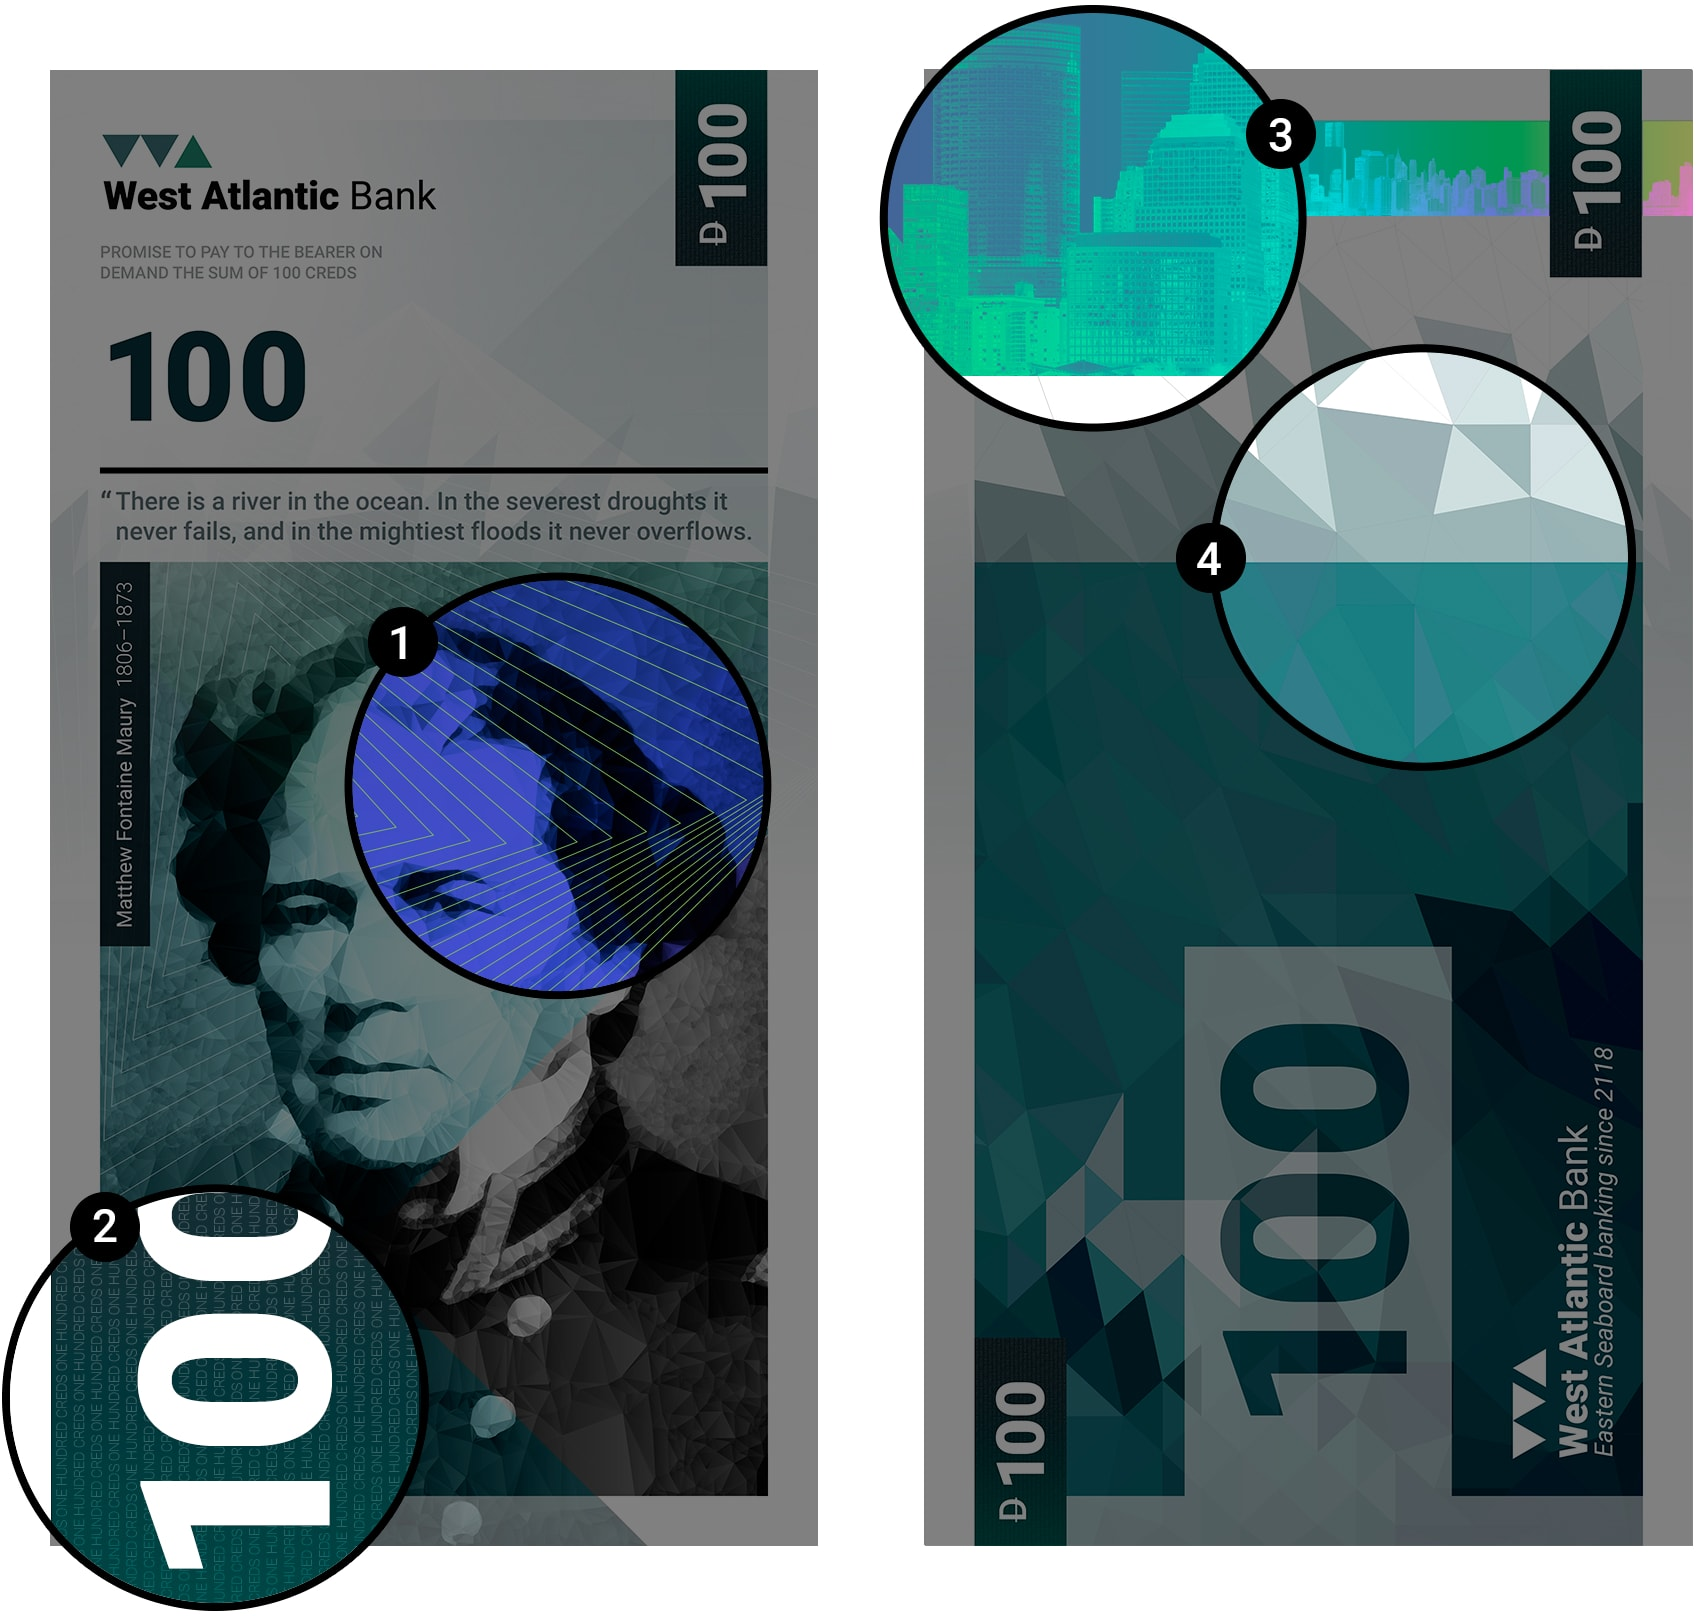 Banknote security features